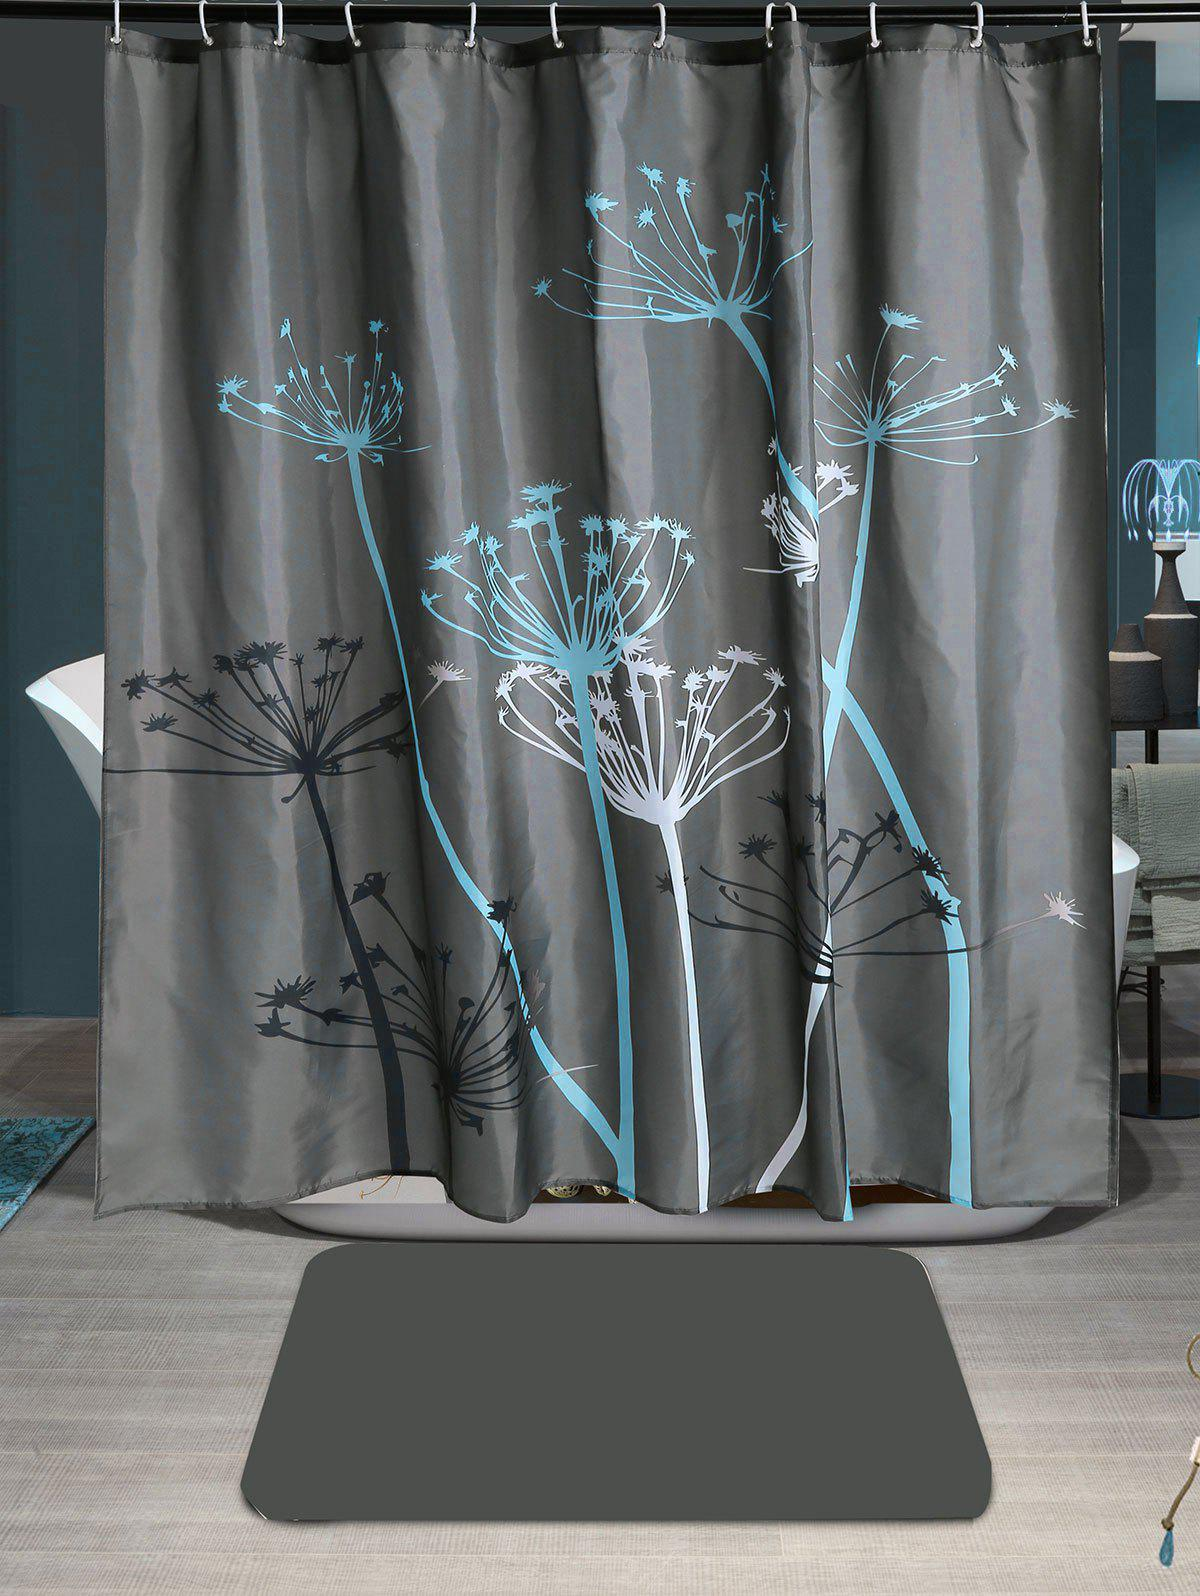 Dandelion Print Waterproof Shower Curtain